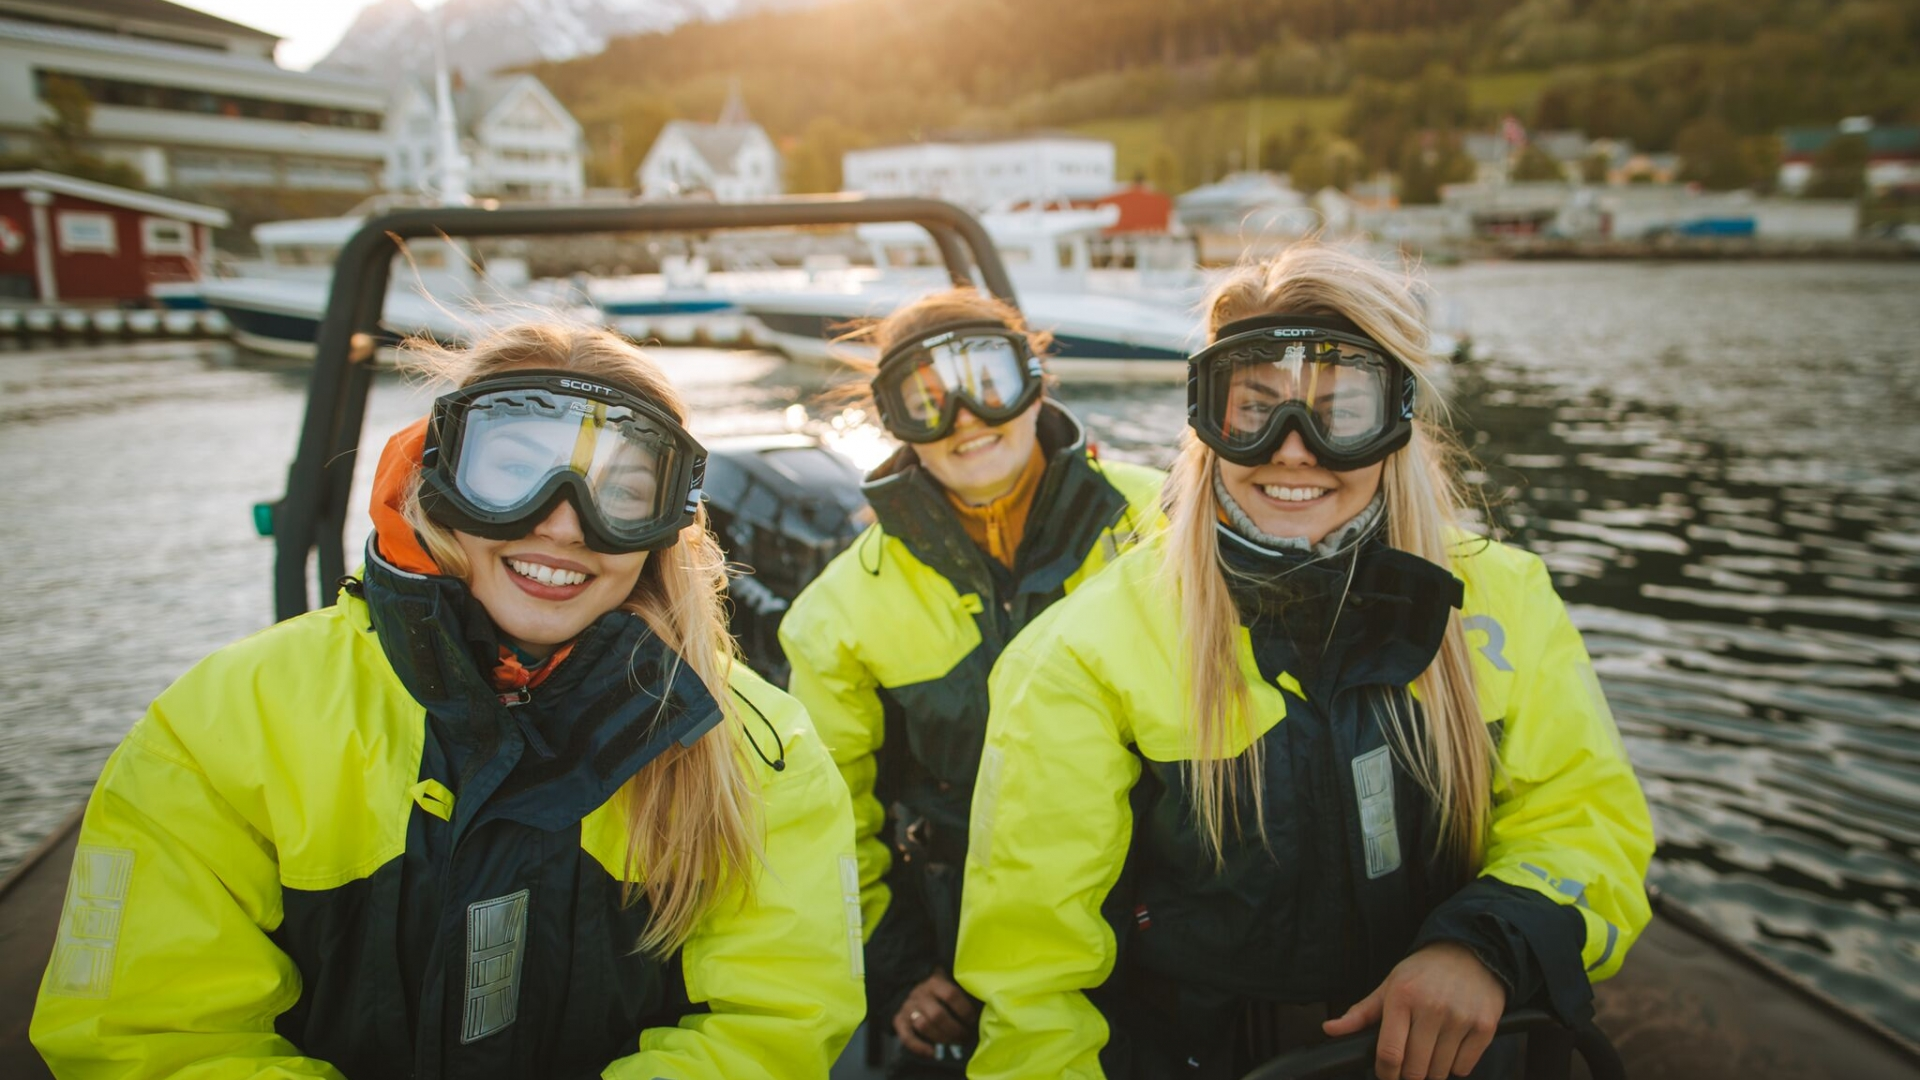 Girls on RIB boat in Lyngen